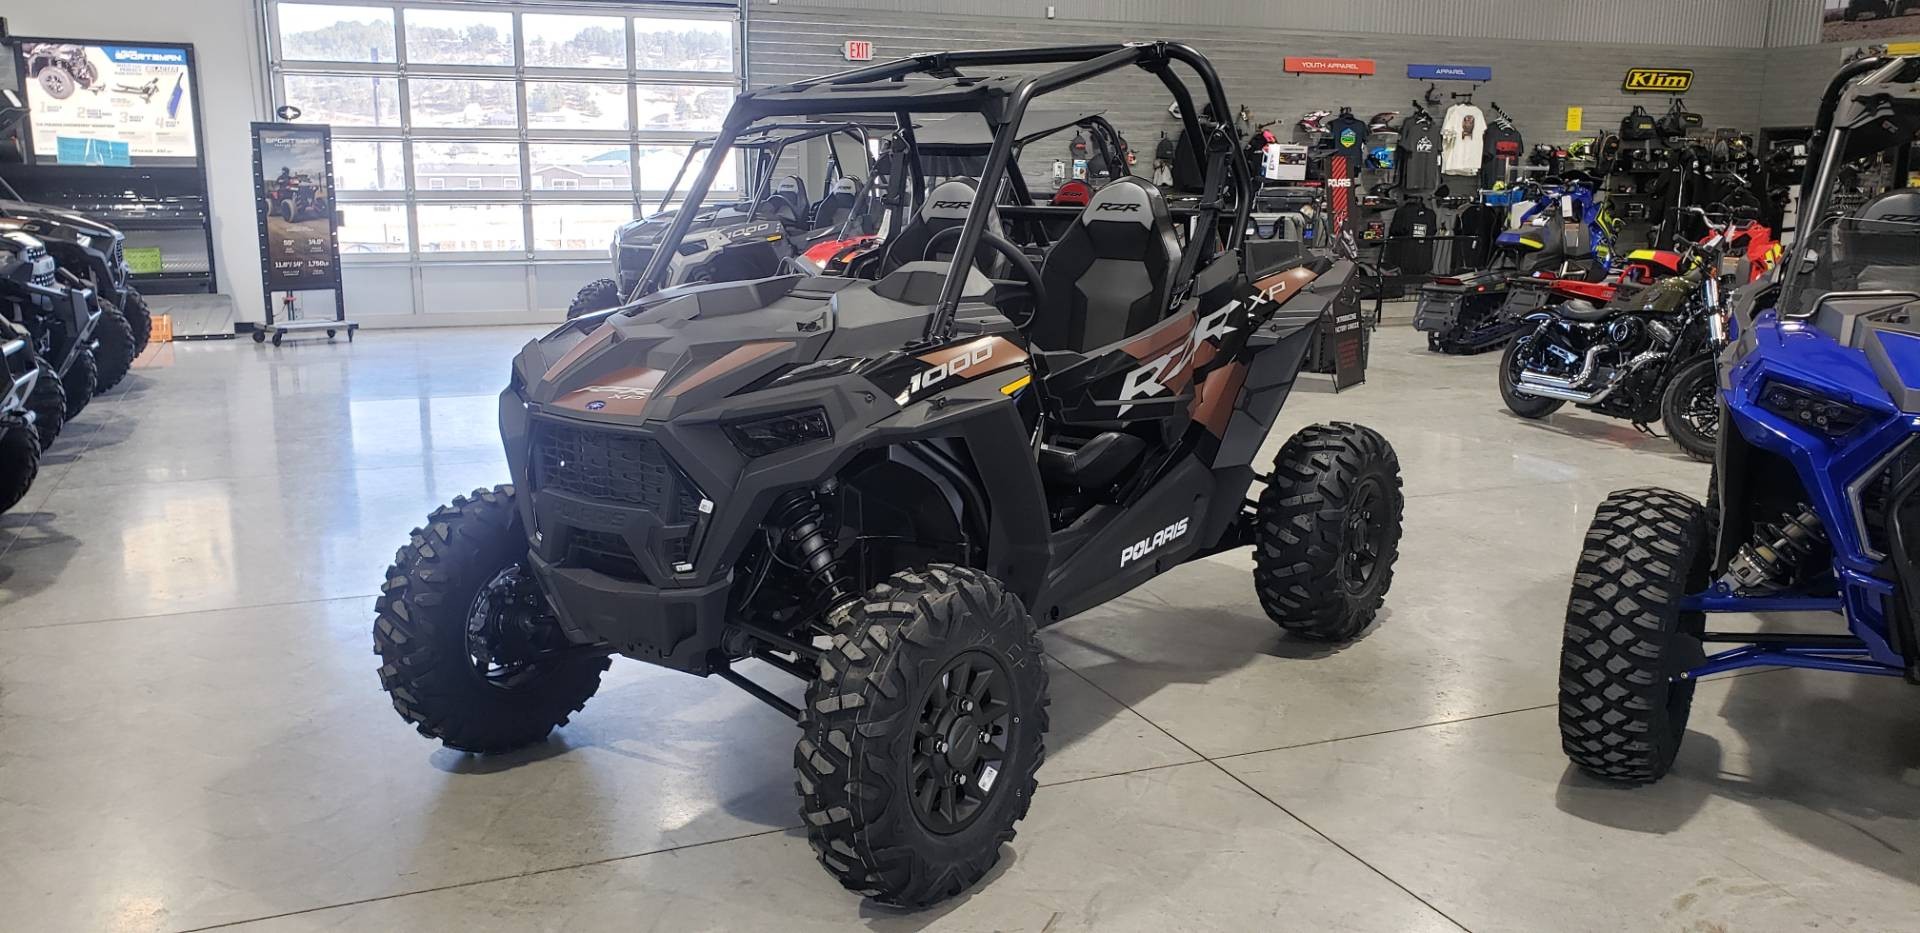 2021 Polaris RZR XP 1000 Sport in Rapid City, South Dakota - Photo 1